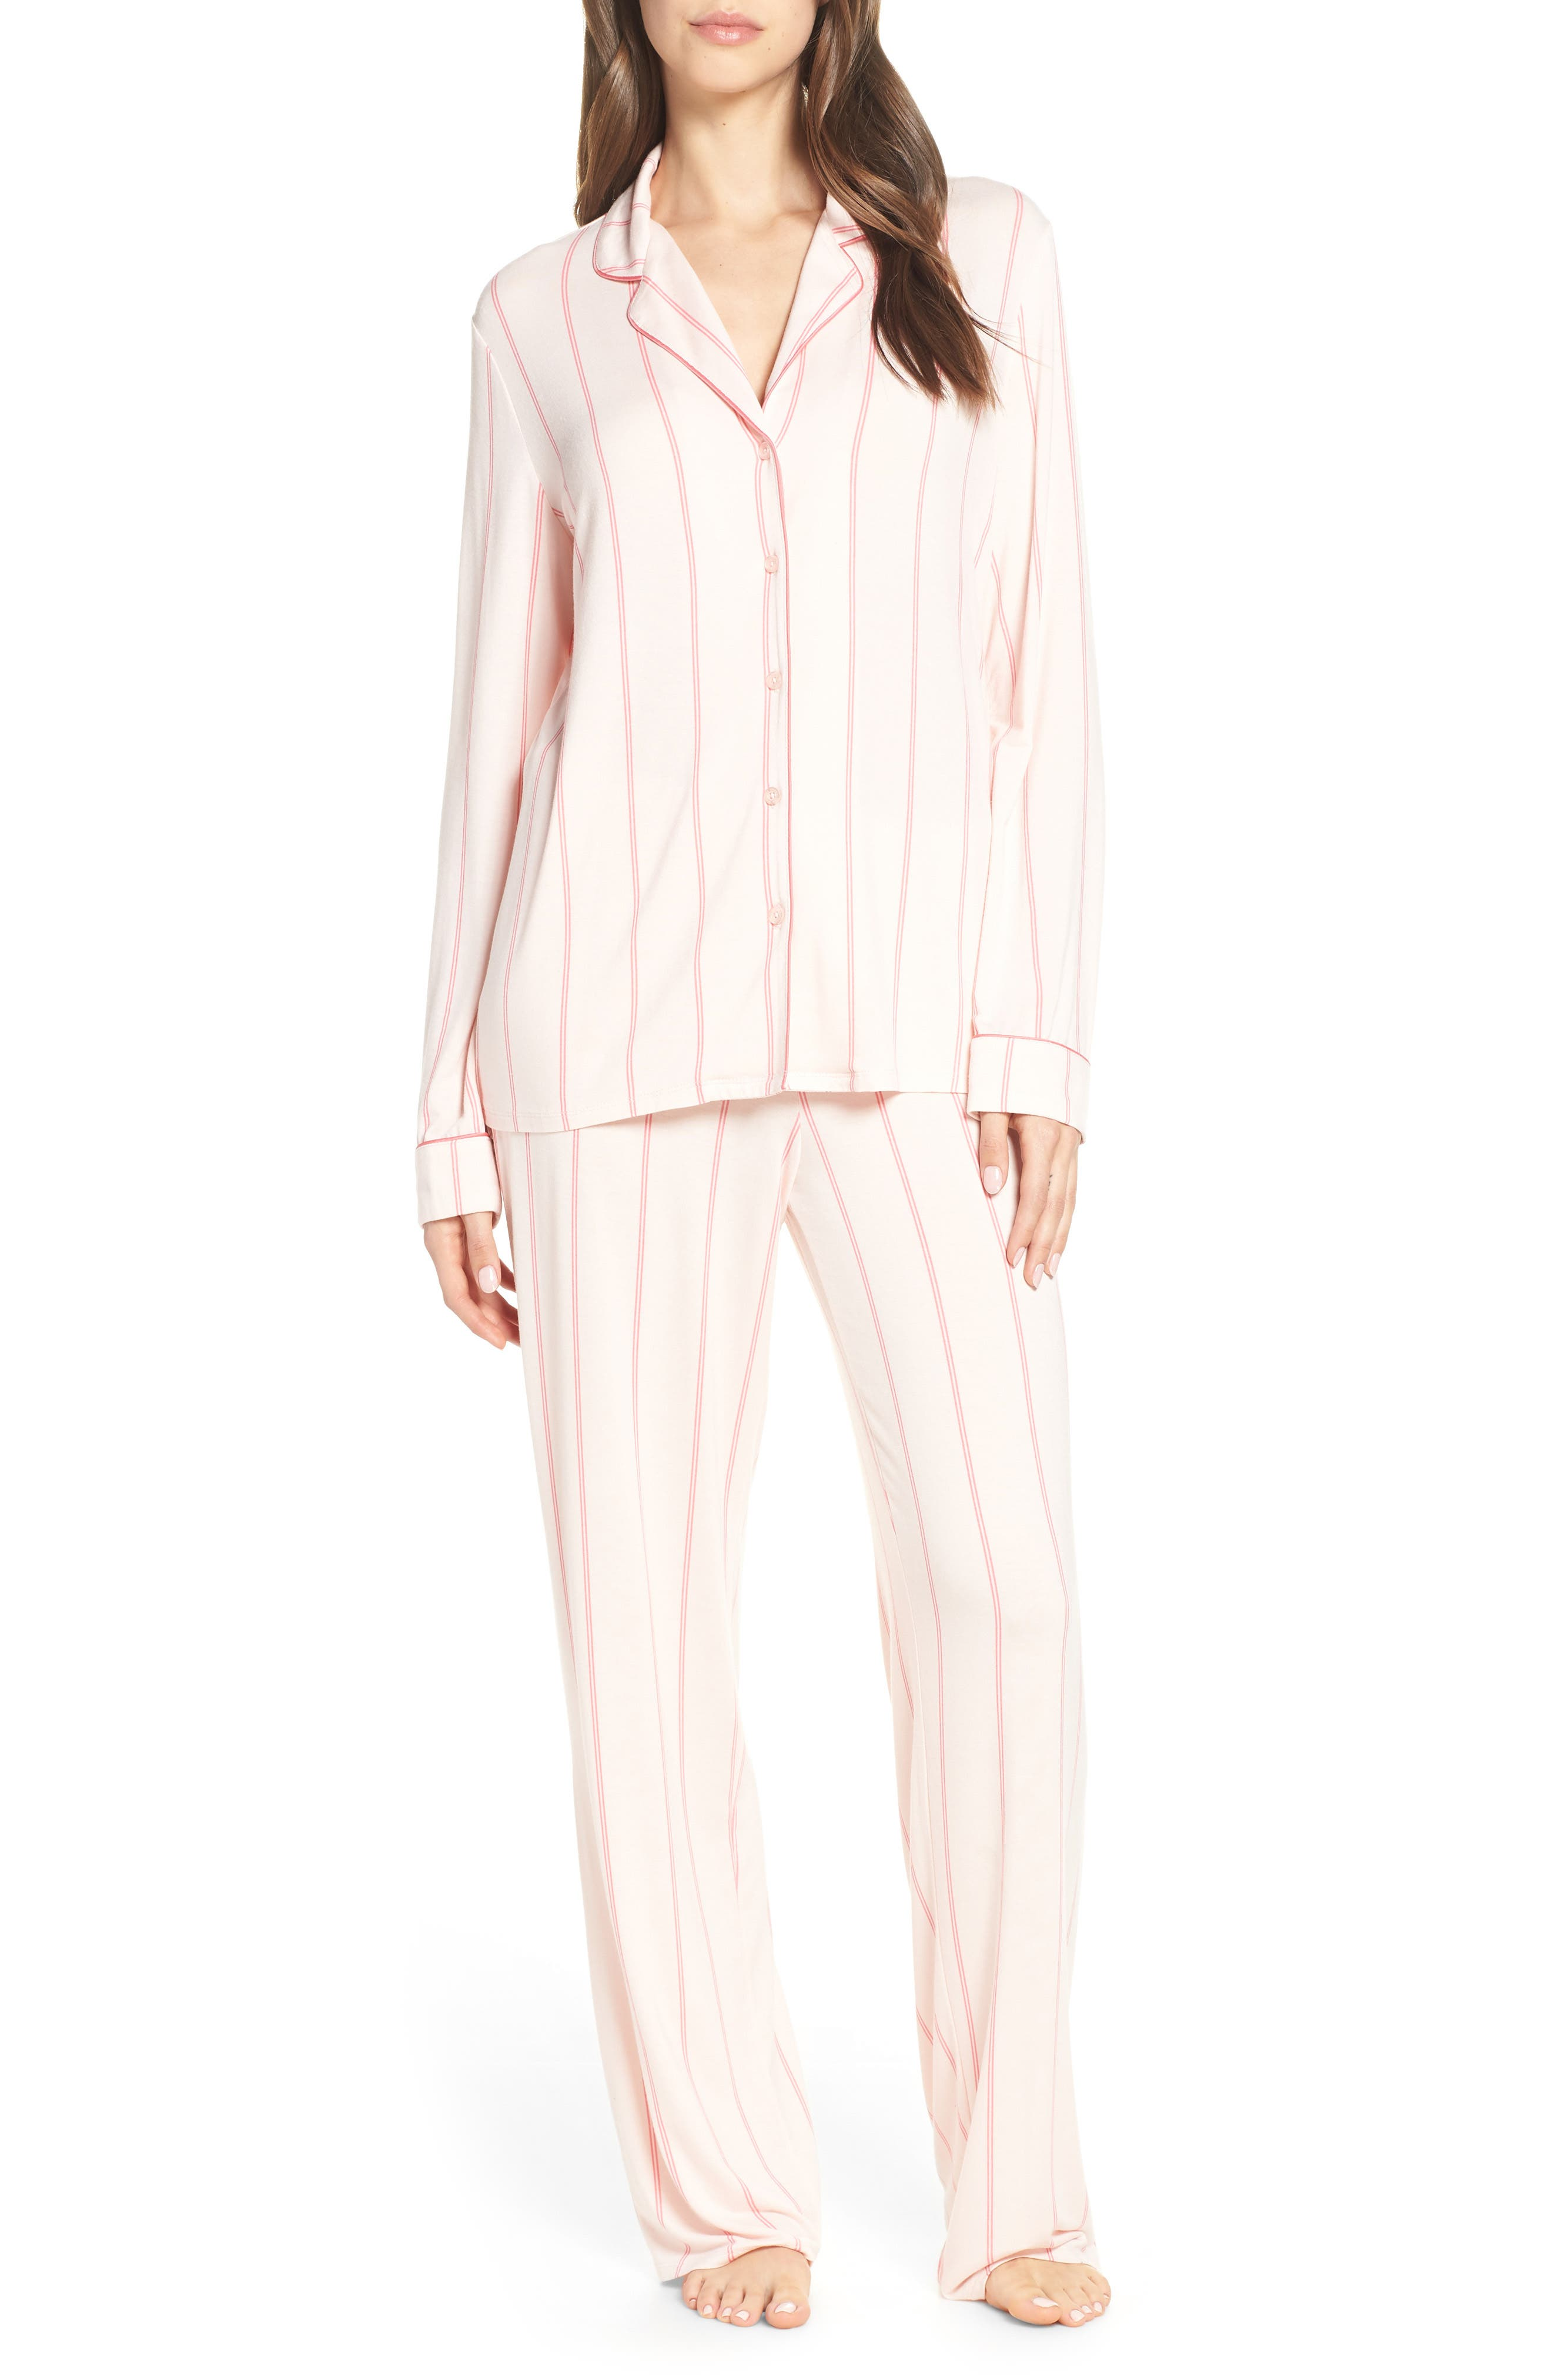 NORDSTROM LINGERIE, Moonlight Pajamas, Main thumbnail 1, color, PINK CRYSTAL MICRO STRIPE